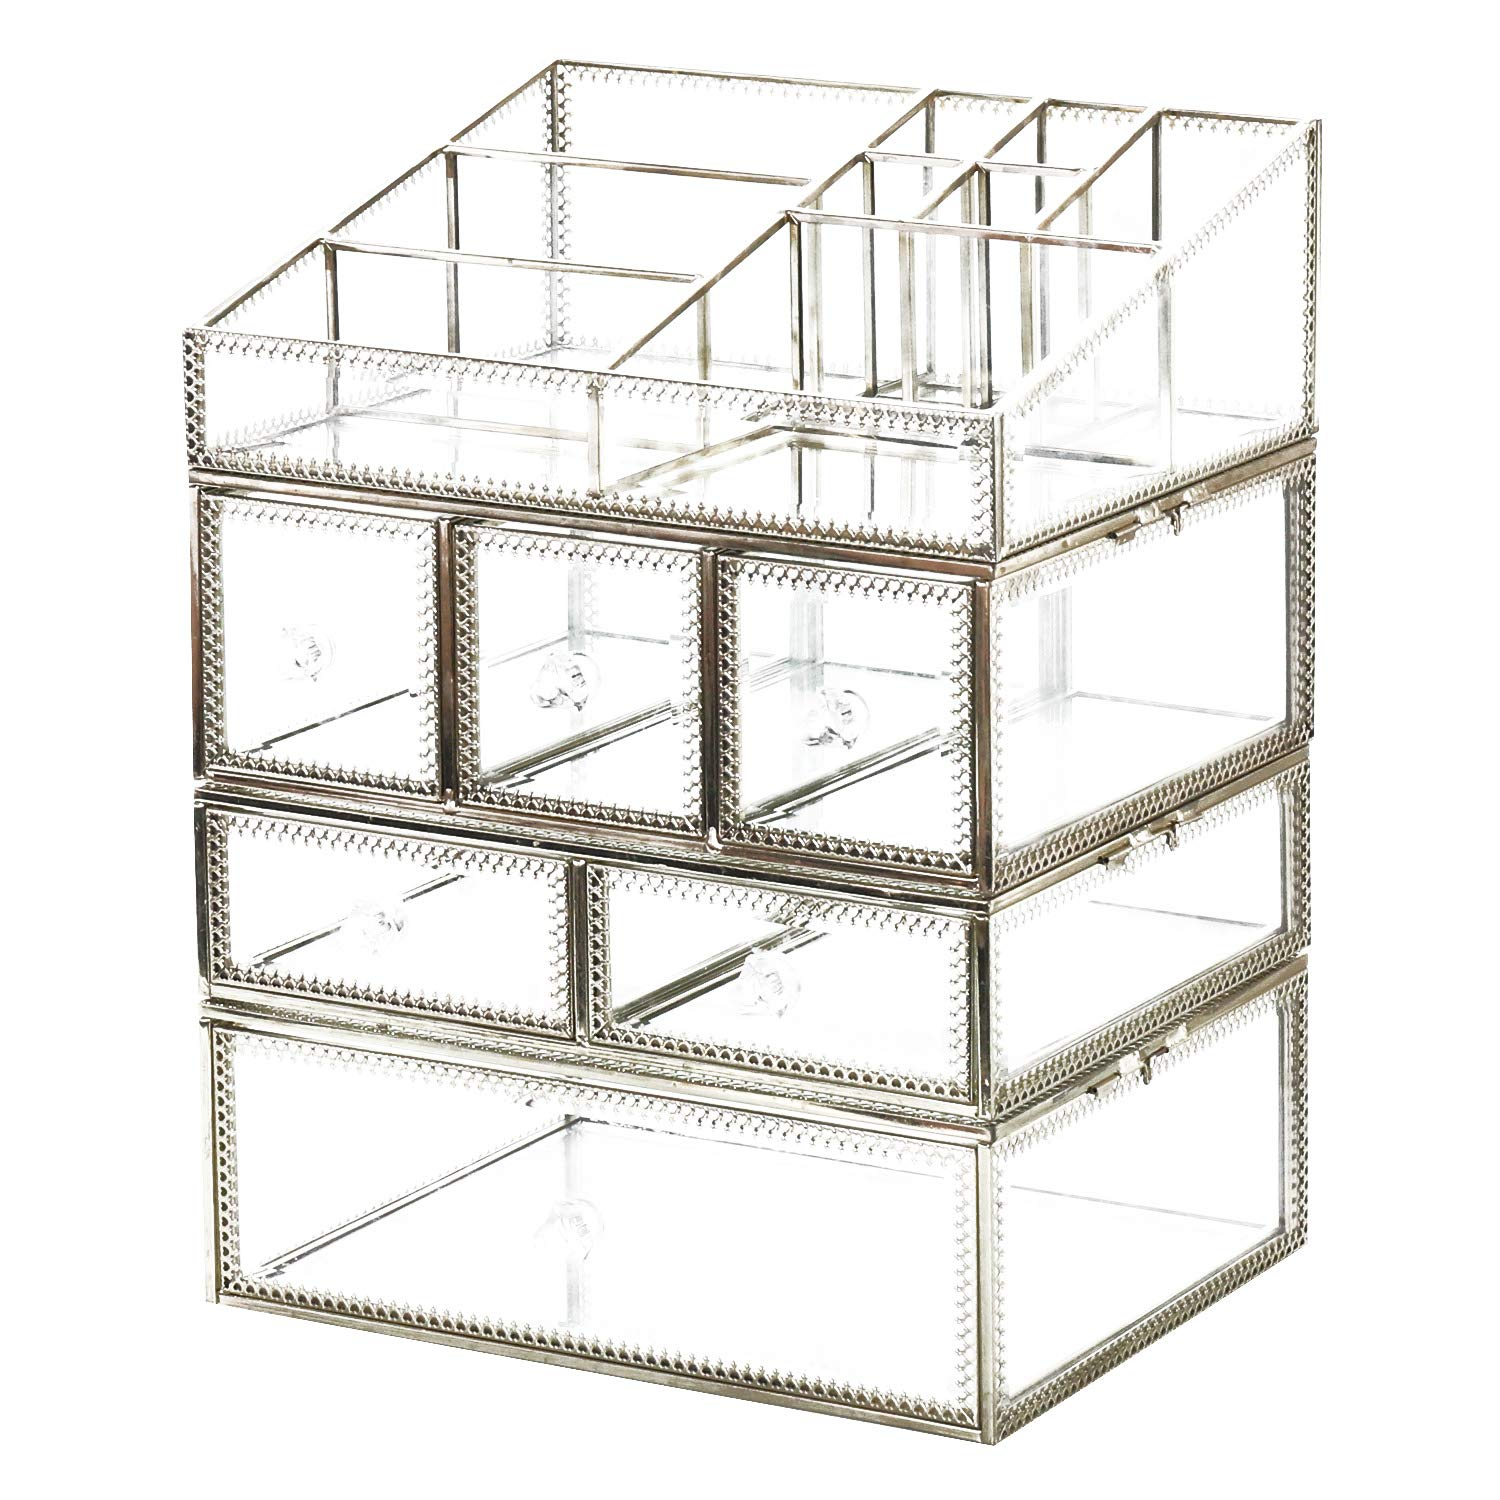 Hersoo Antique Spacious Mirror Glass 4-Shelf Drawers/Brass Metal Cosmetic Makeup Storage/Jewelry Top Dresser. by Hersoo (Image #2)